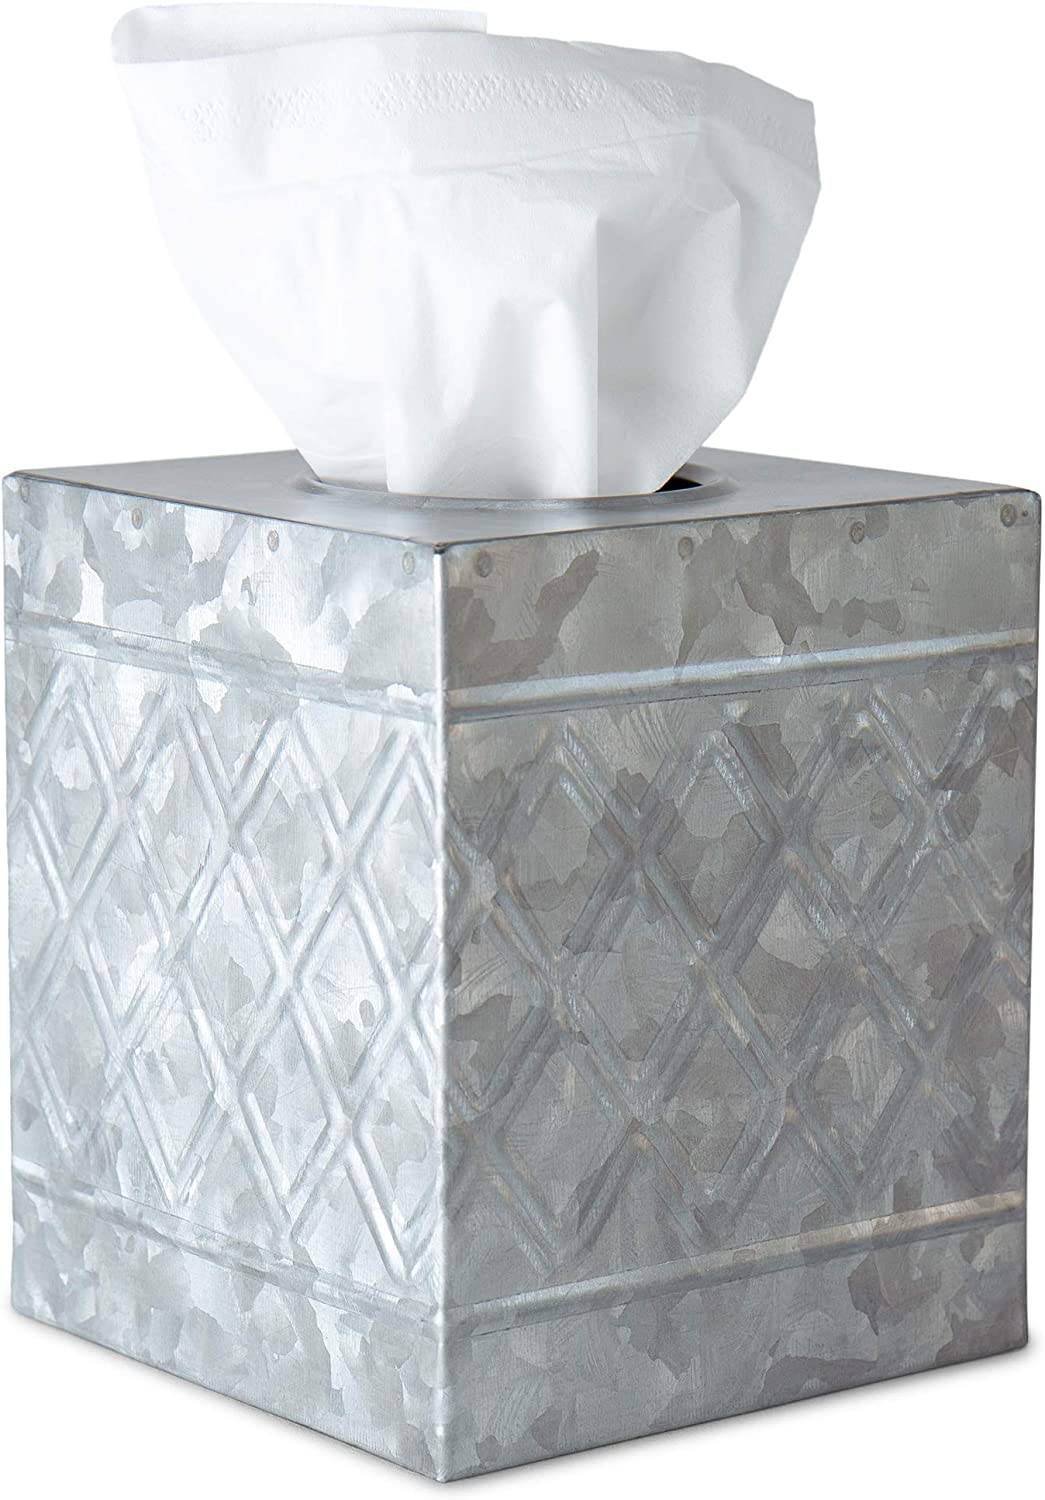 Bless You Tissue Box Cover Country Farmhouse Accent Home Decor